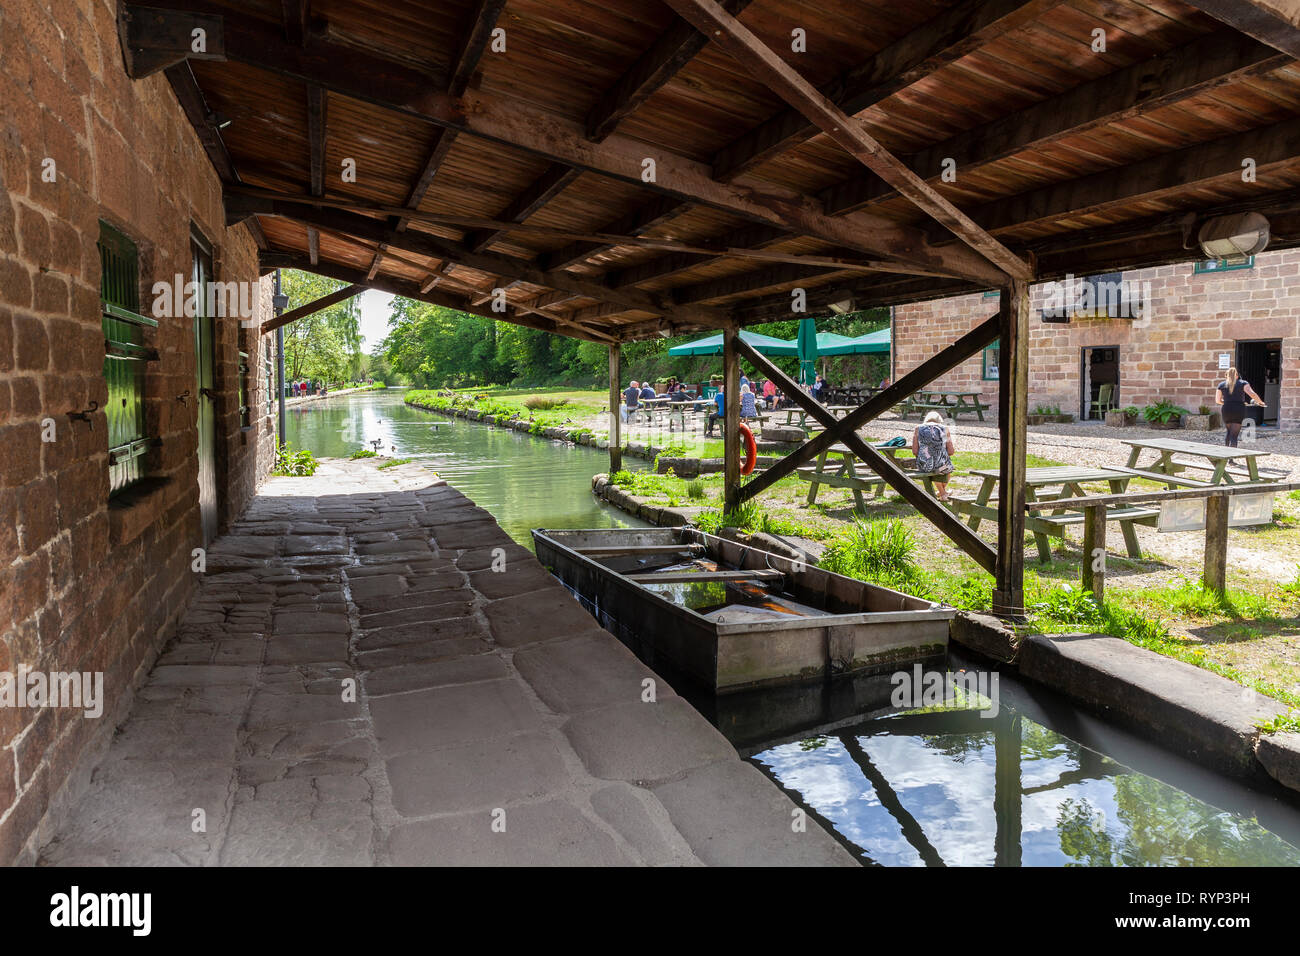 Cromford Wharf, is a small picturesque place, in the Derbyshire country side, next to the canal, it has a small cafe on site - Stock Image